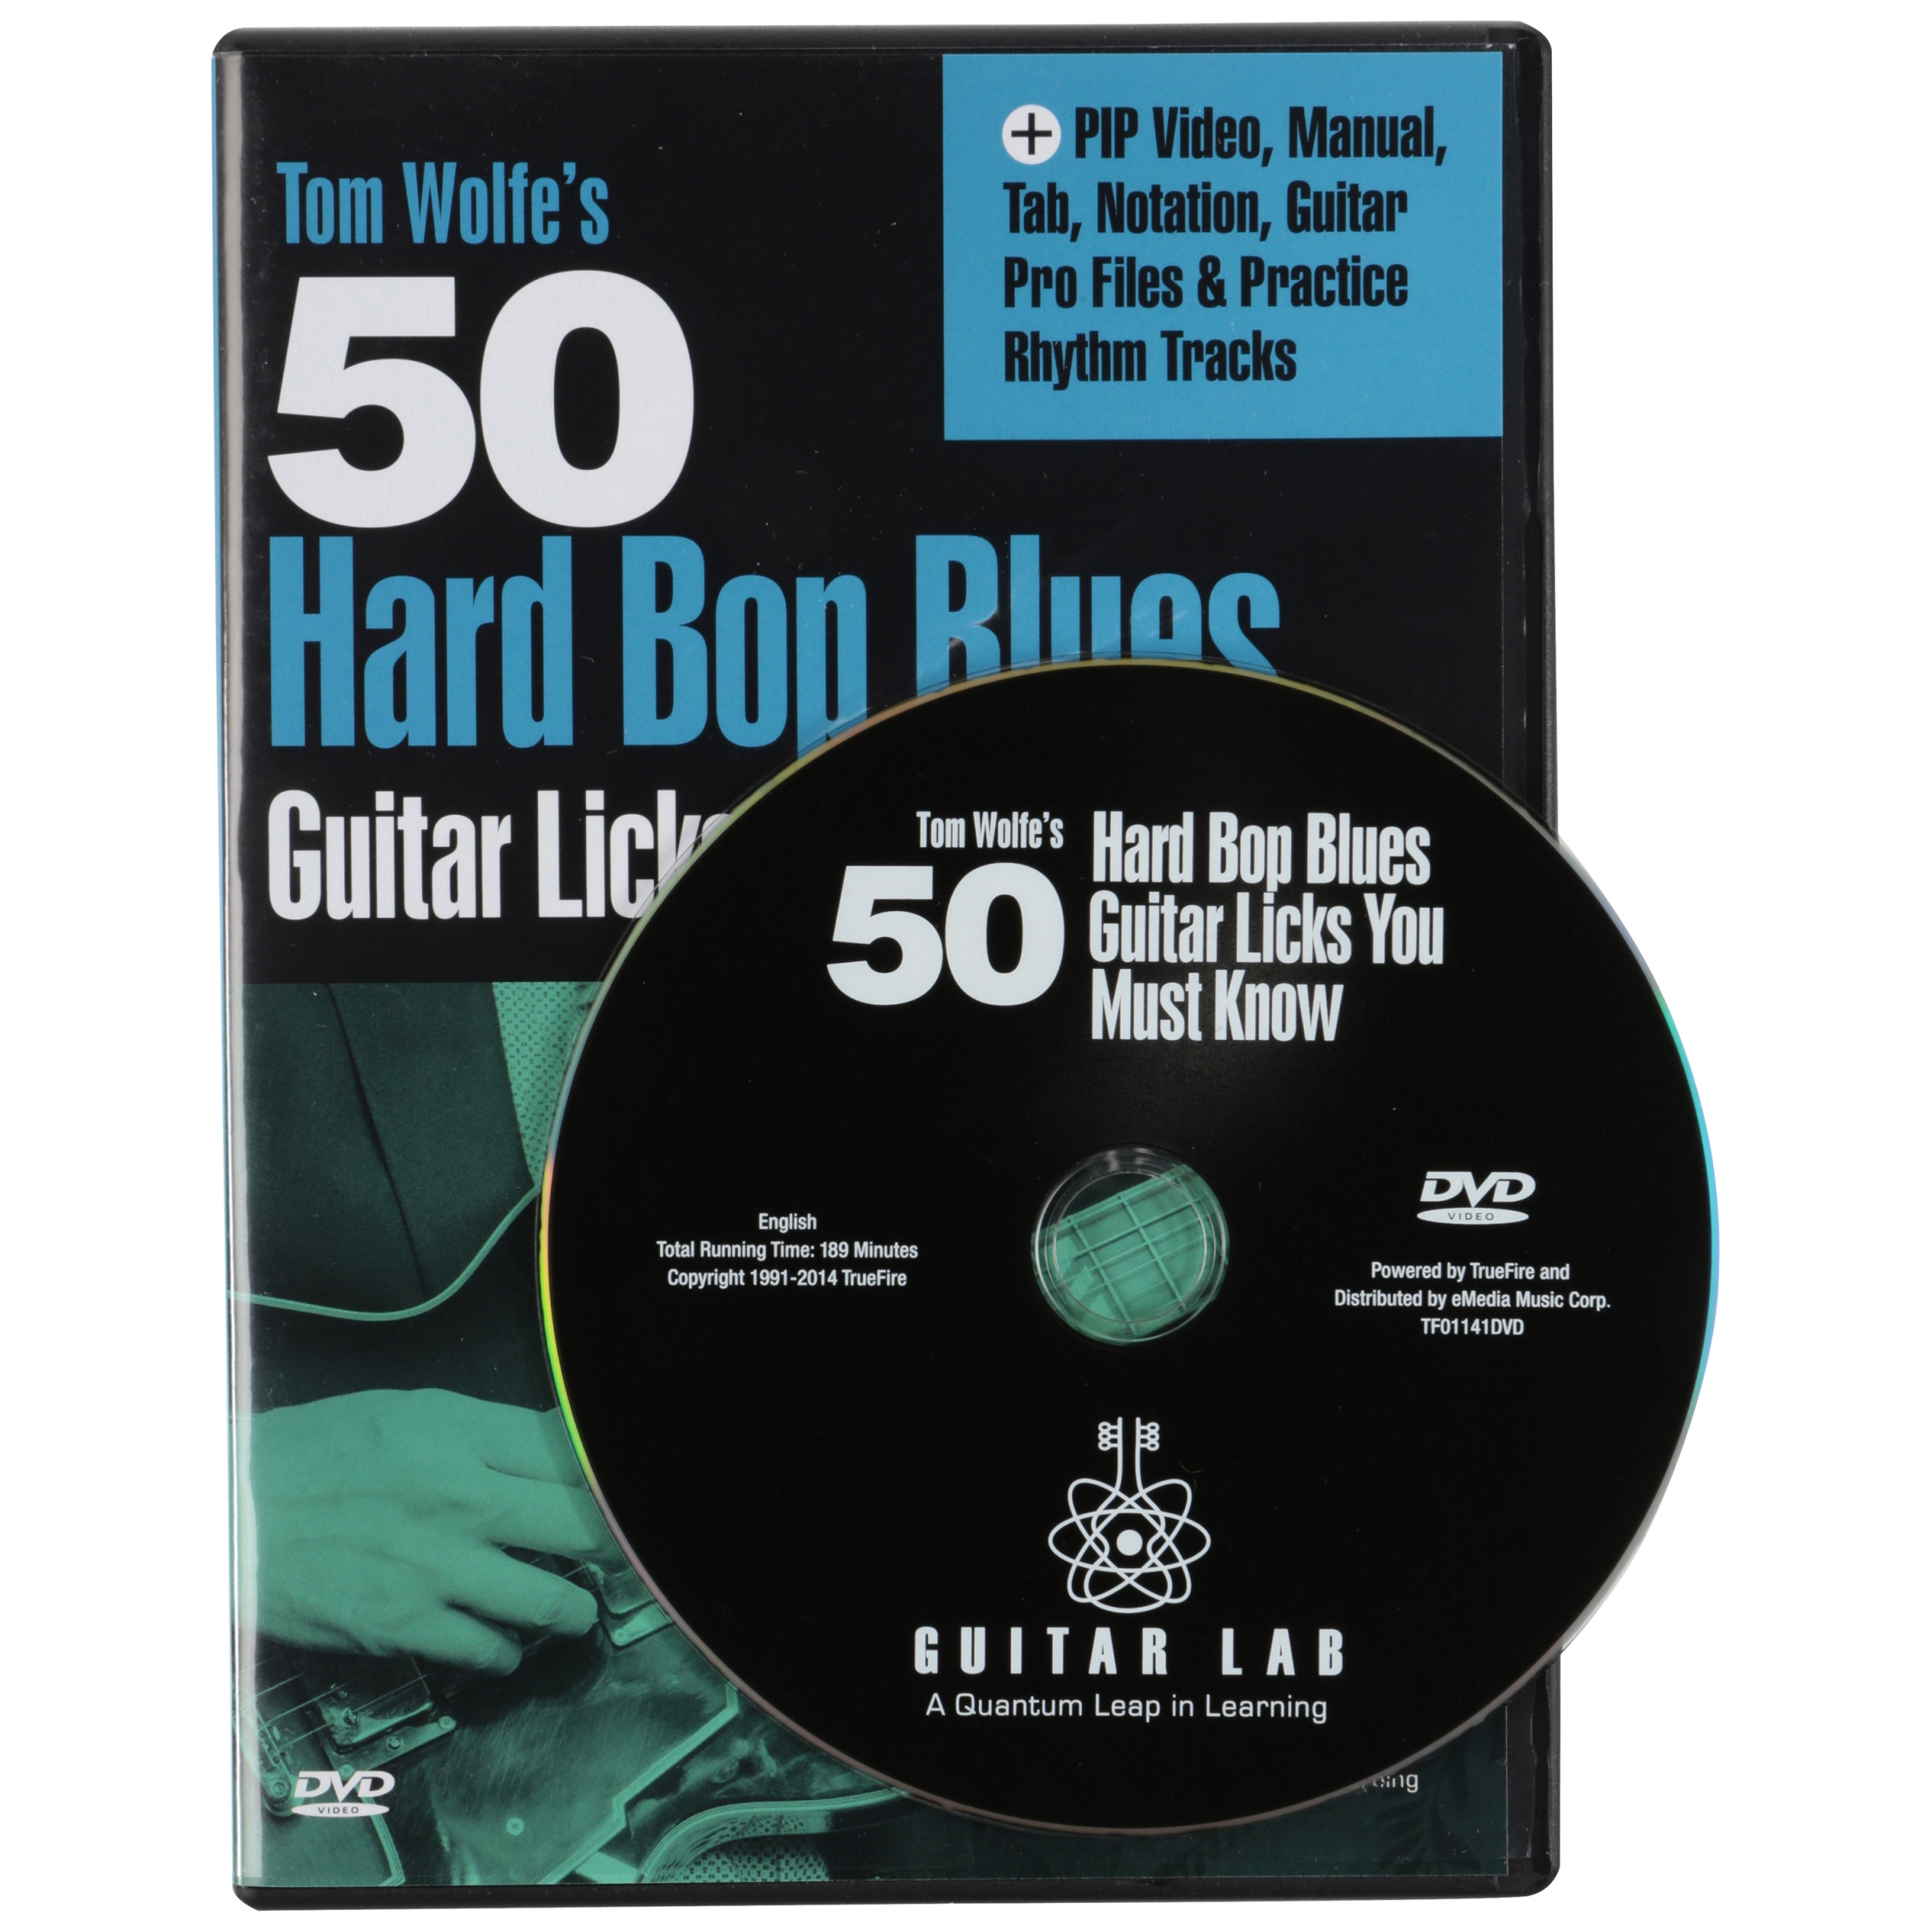 Guitar Lab Tom Wolfe's 50 Hard Bop Blues Instructional DVD